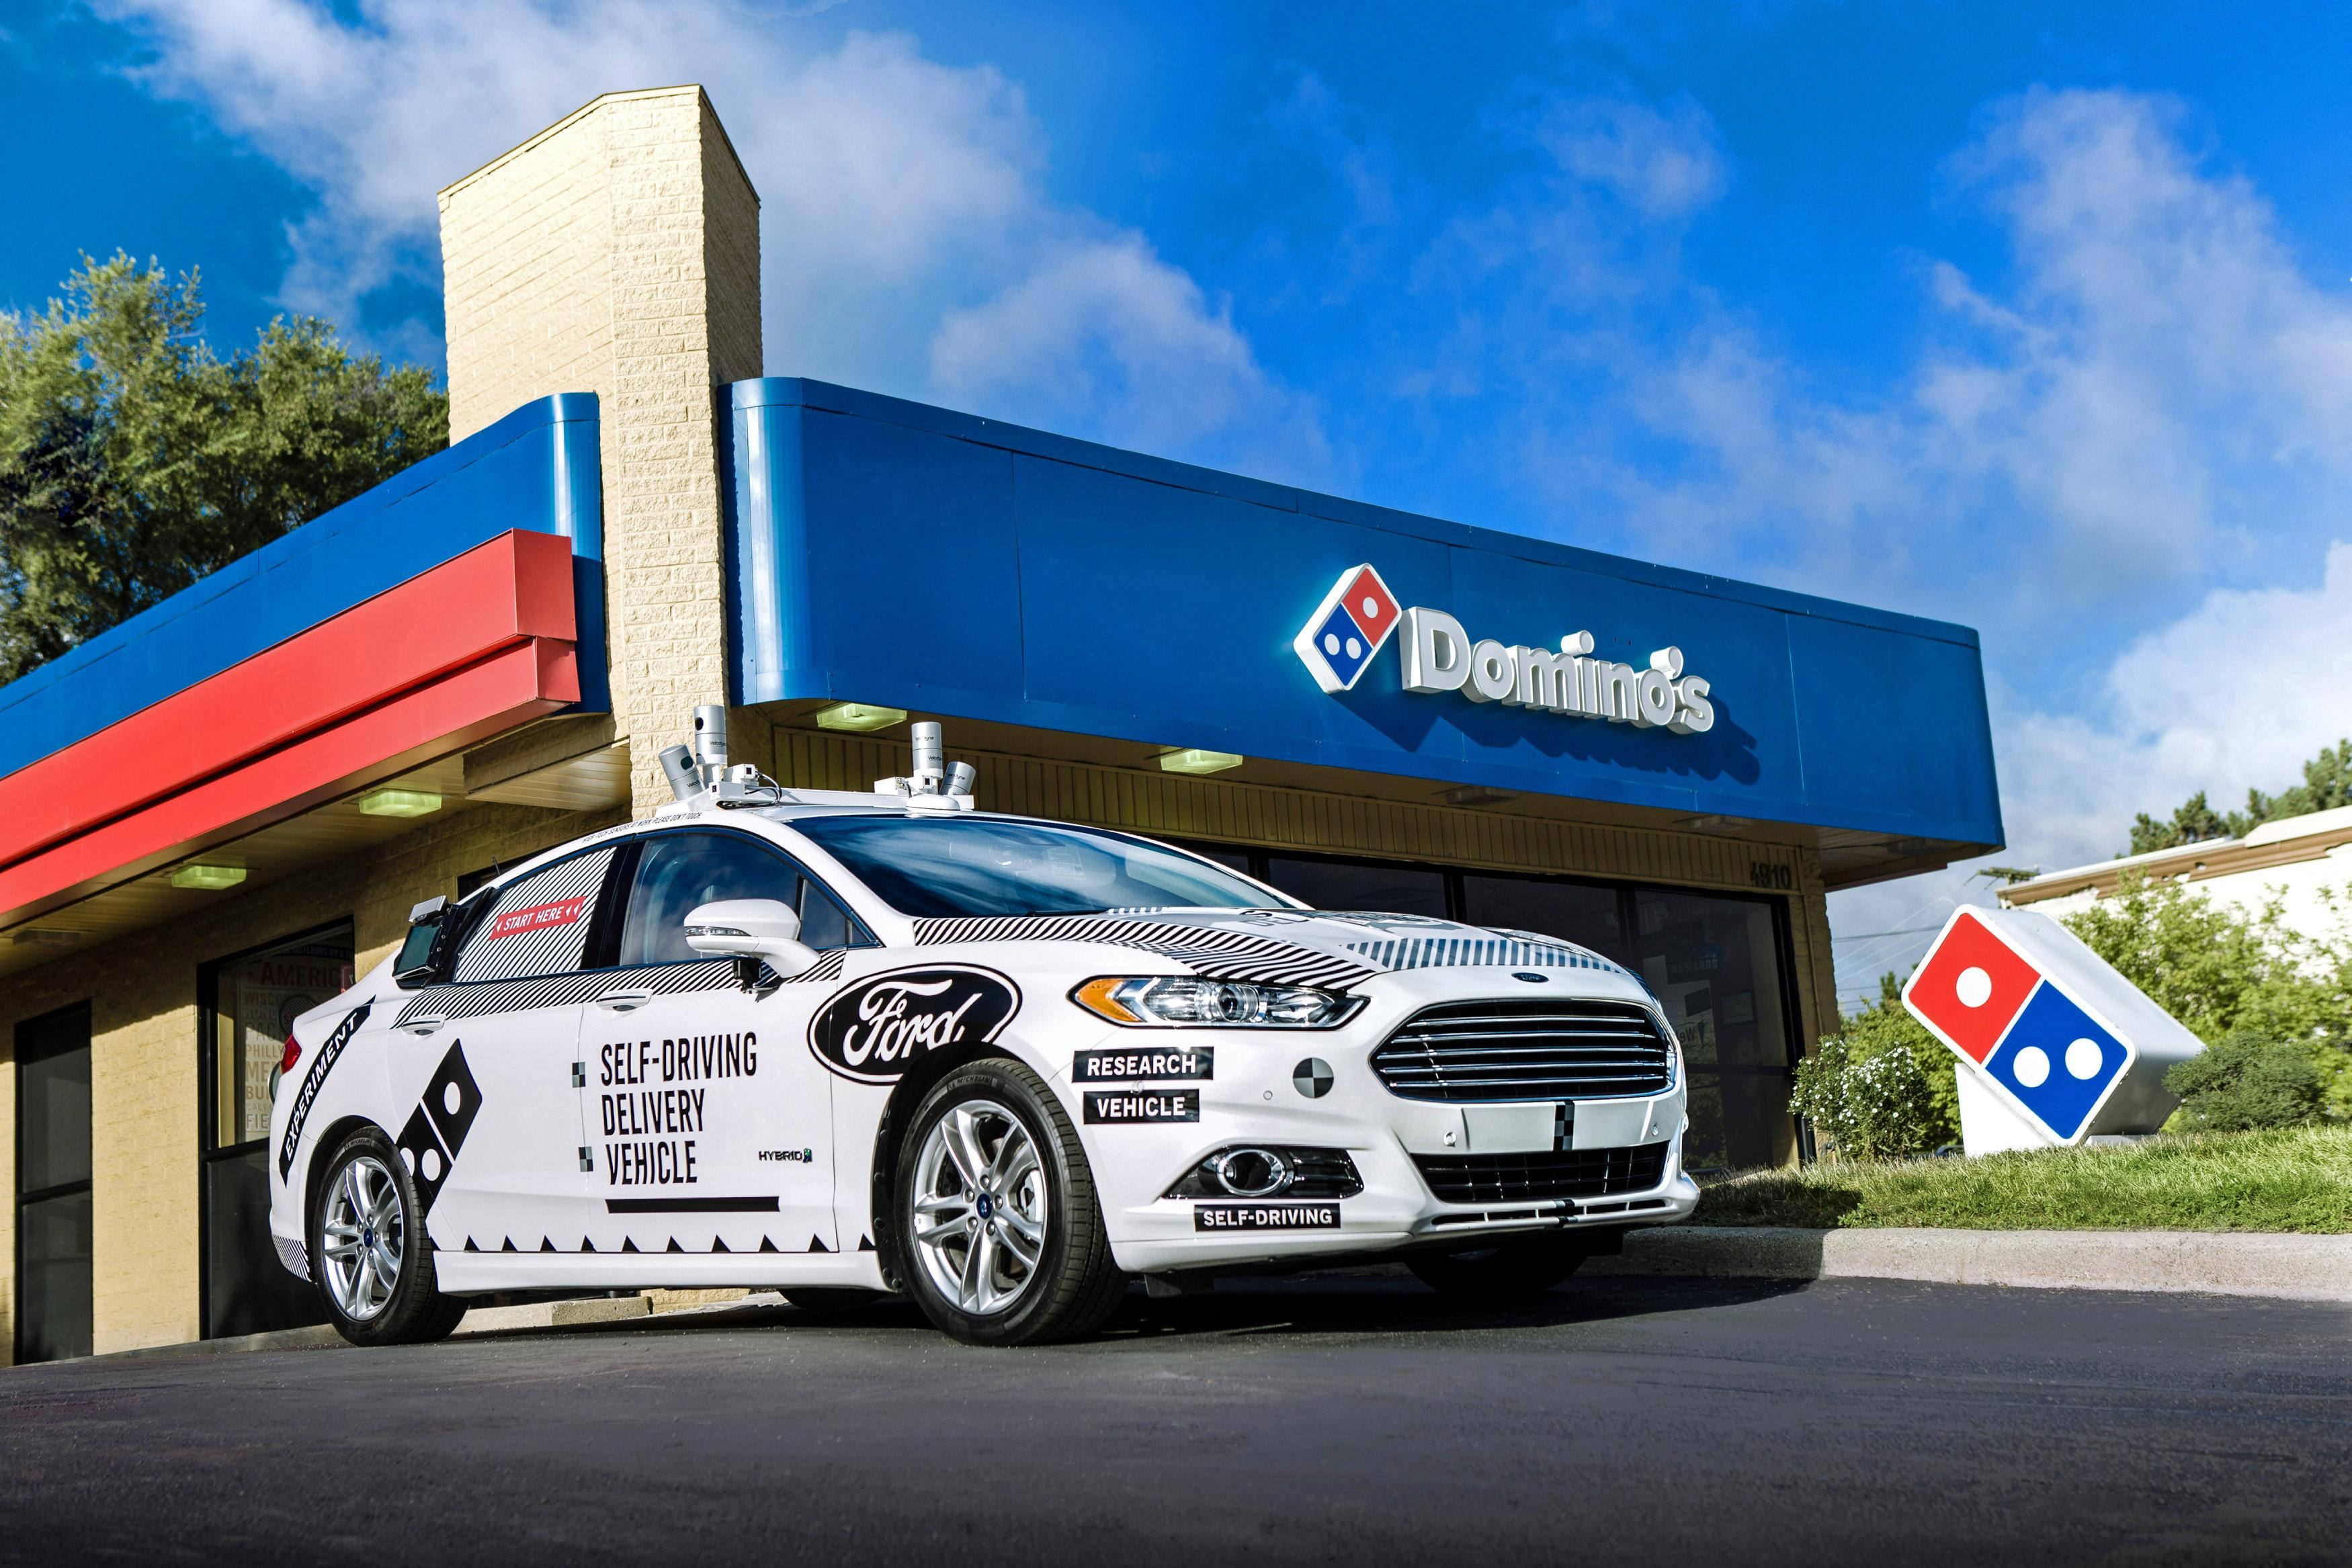 cdb721e5f4 A Ford self-driving delivery vehicle is pictured in front of a Domino s  pizza restaurant in this undated handout photo obtained by Reuters August  28